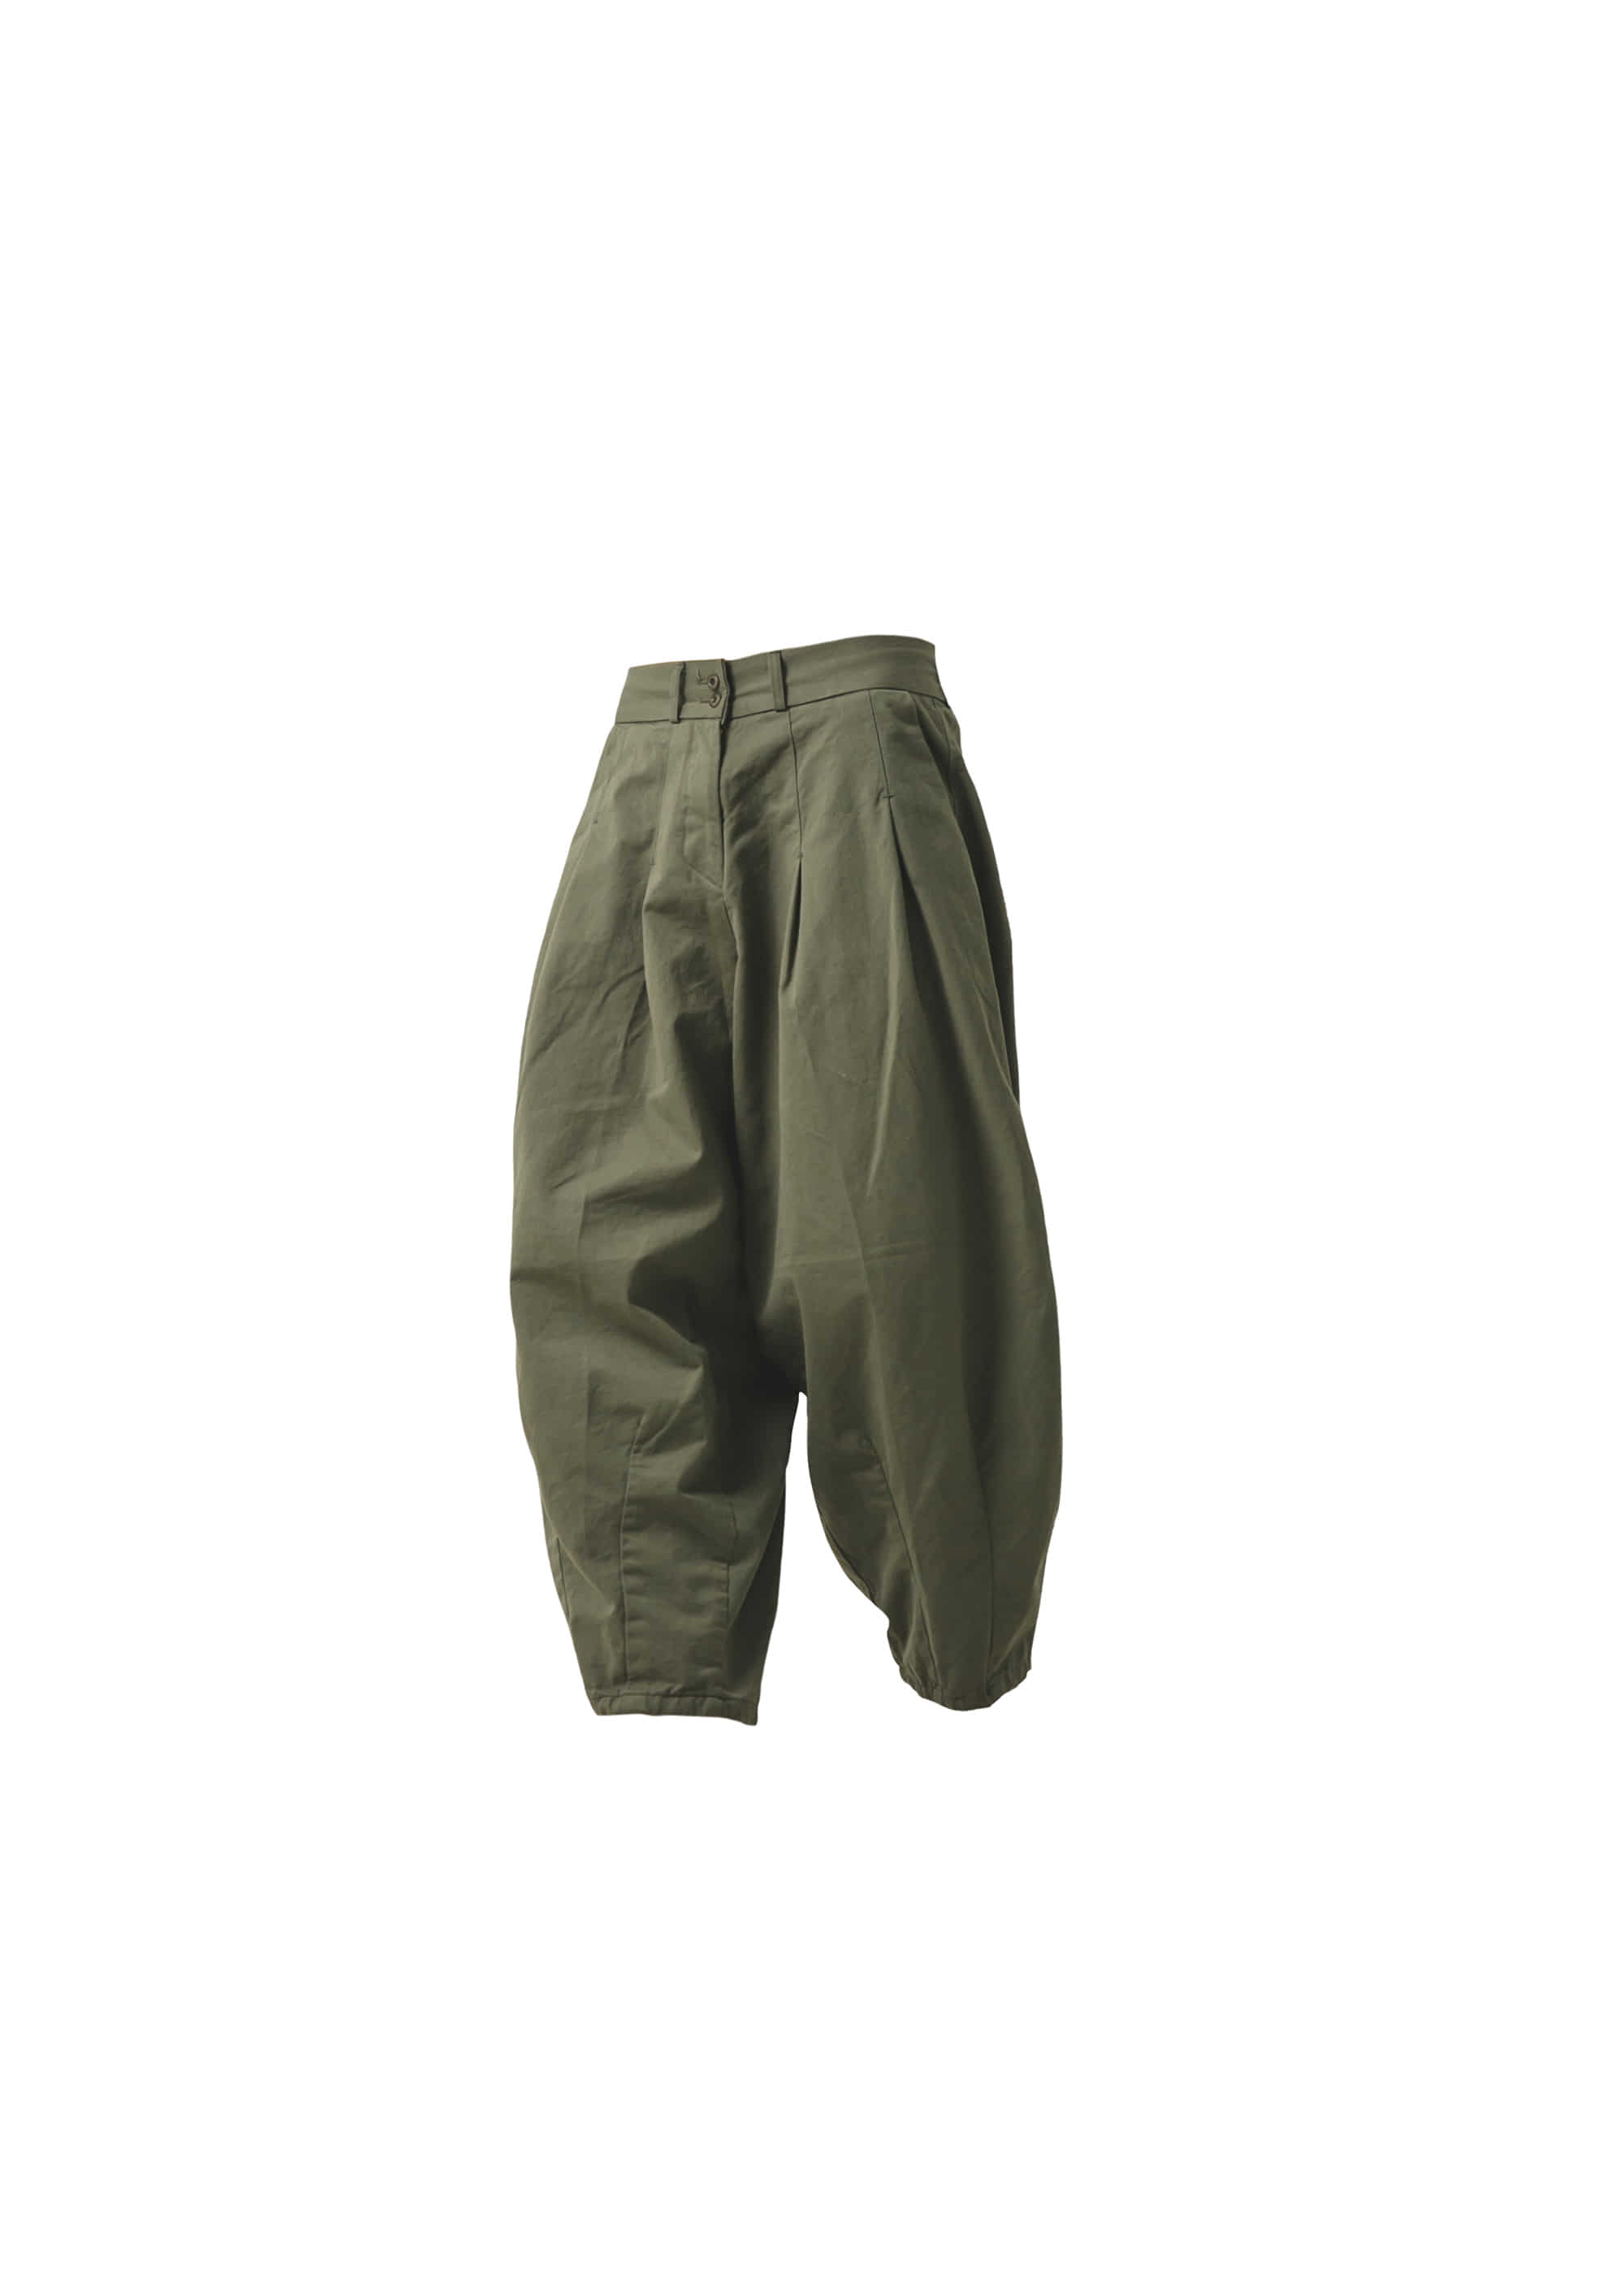 [AG] Cotton Easy Balloon Pants - Khaki [Pre-Order]